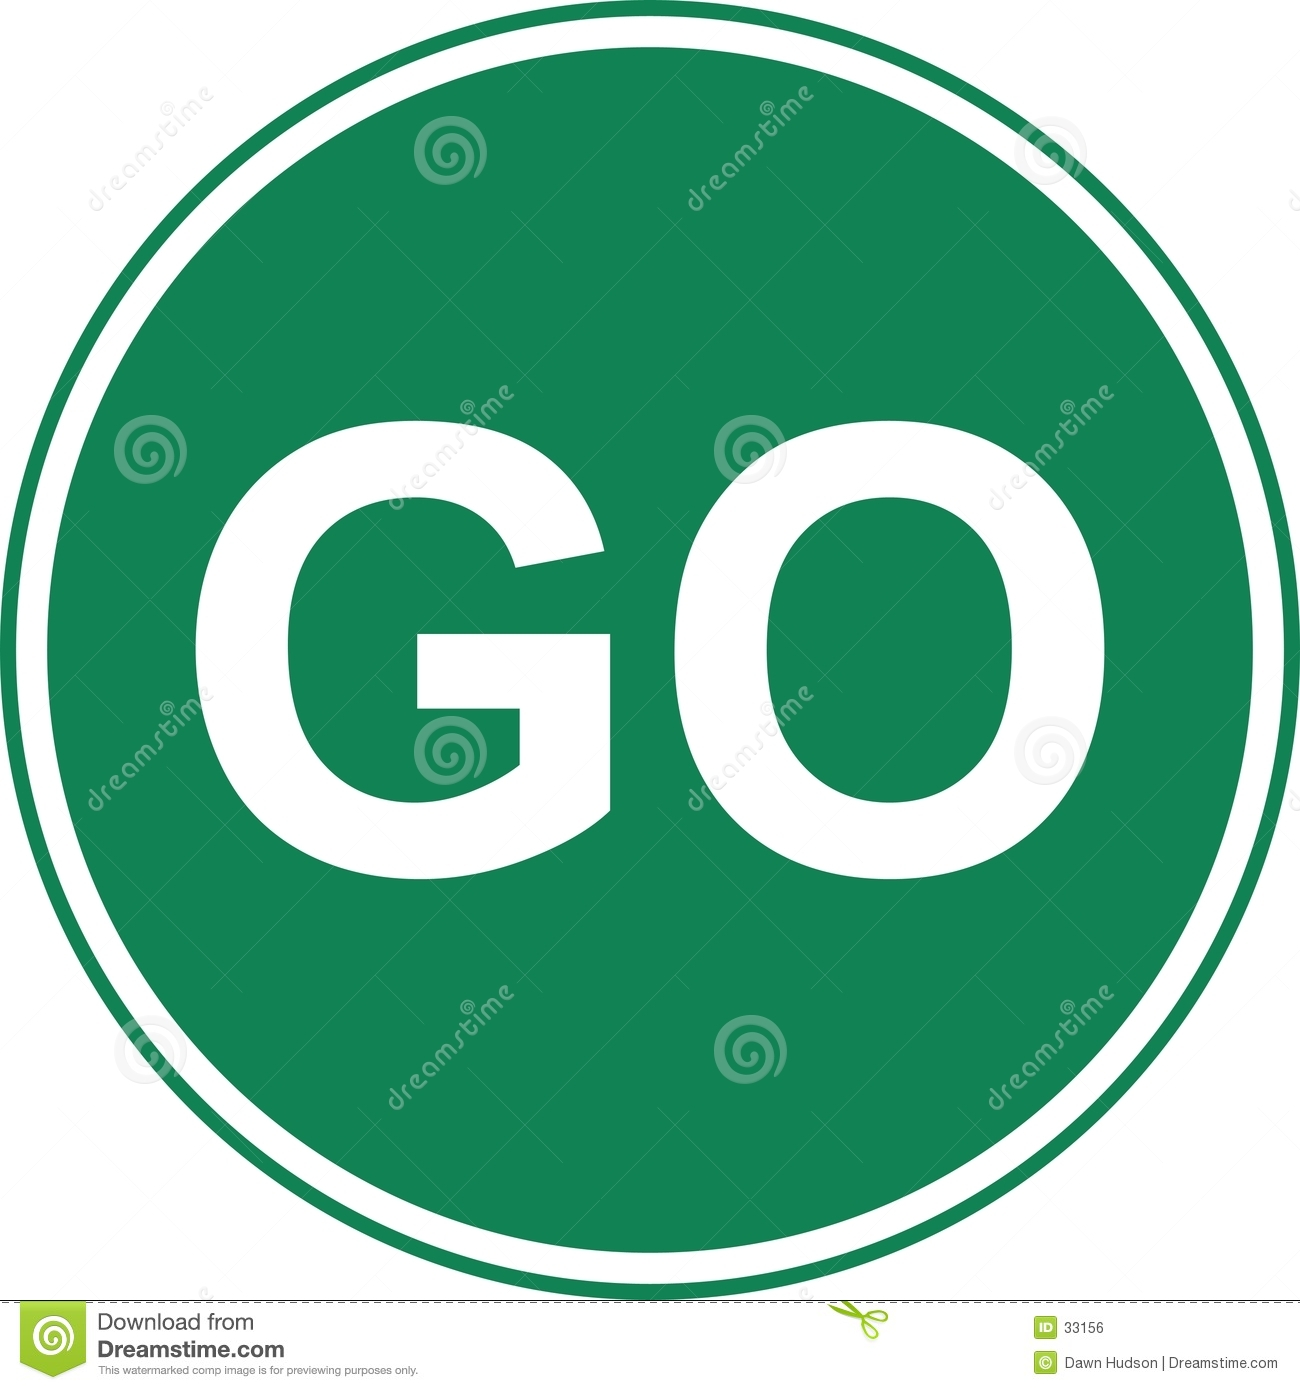 Traffic Sign Clipart - Clipart Suggest